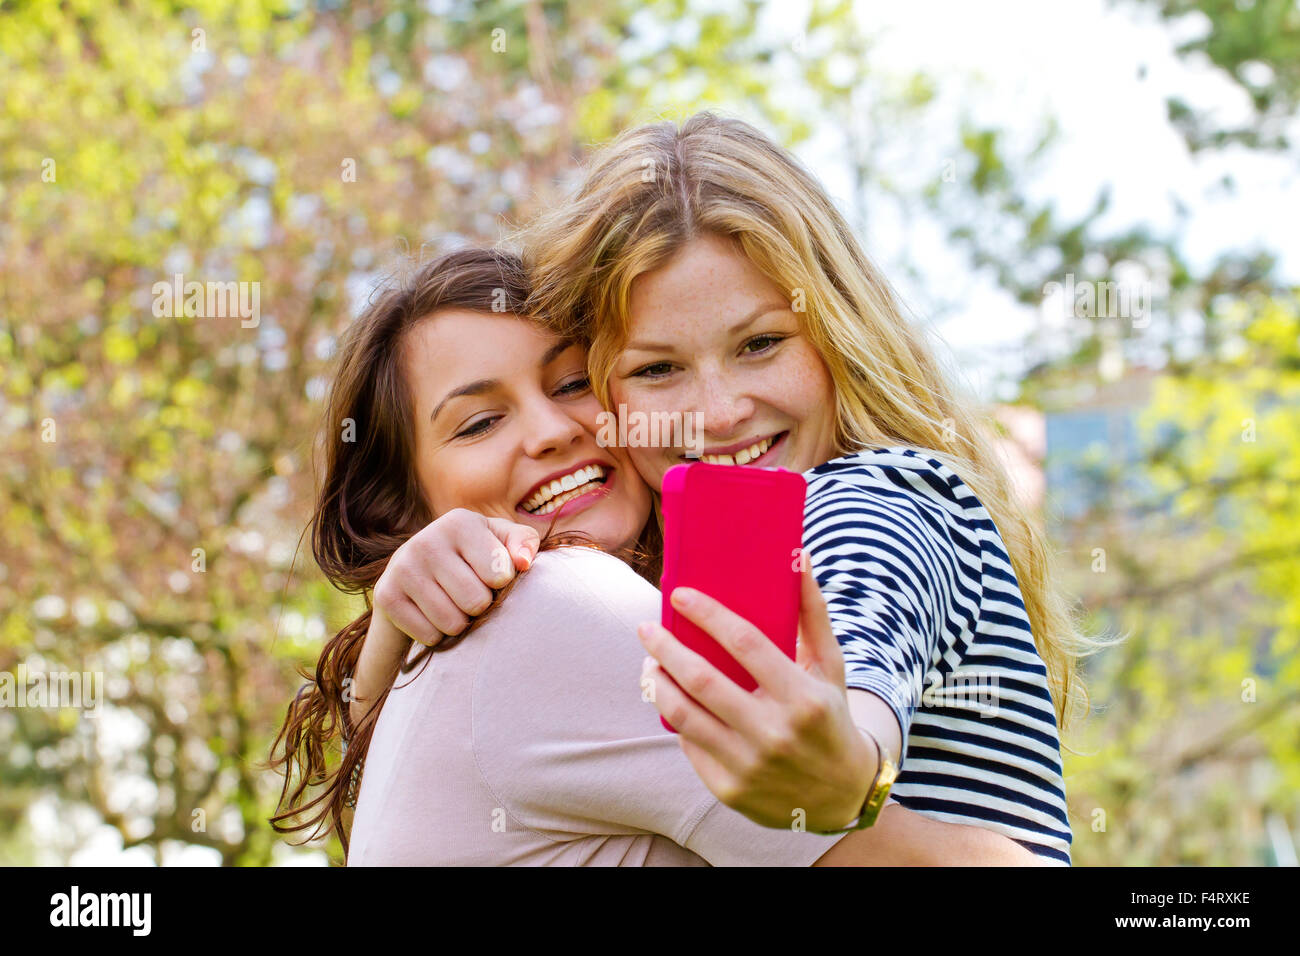 Taking Selfie with Smartphone - Stock Image